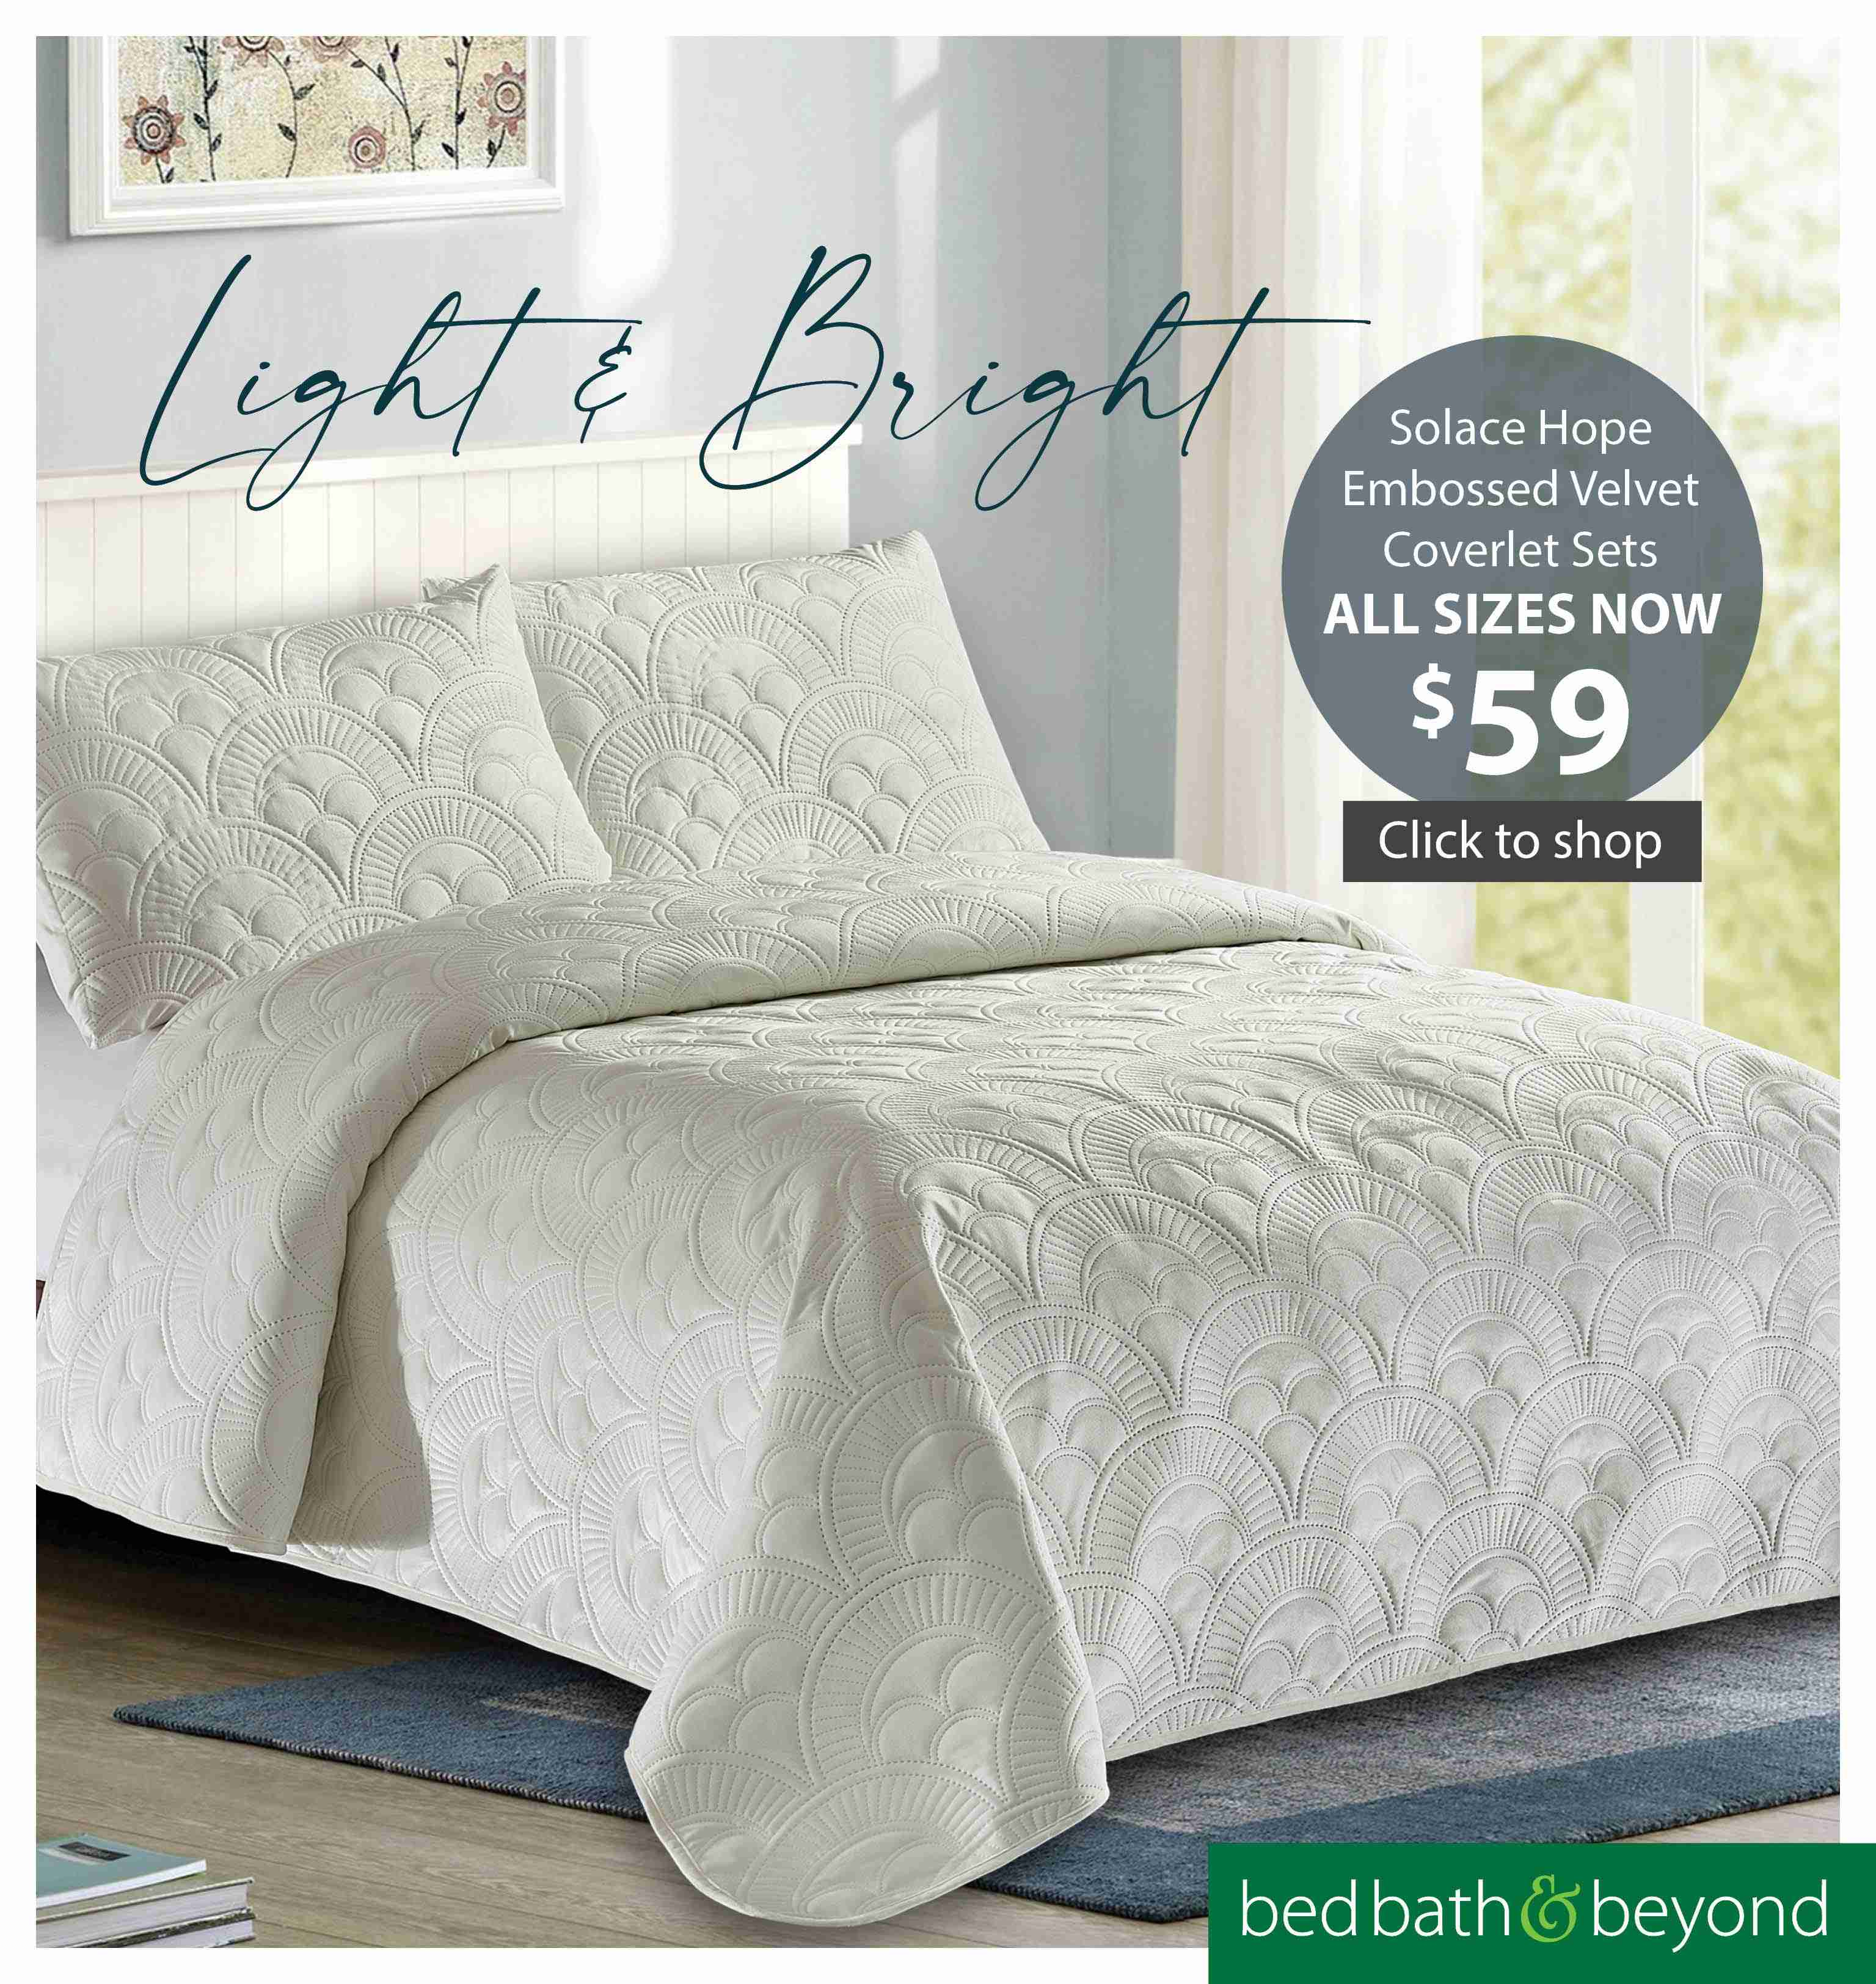 Bed Bath & Beyond mailer  - 09.11.2020 - 22.11.2020. Page 1.